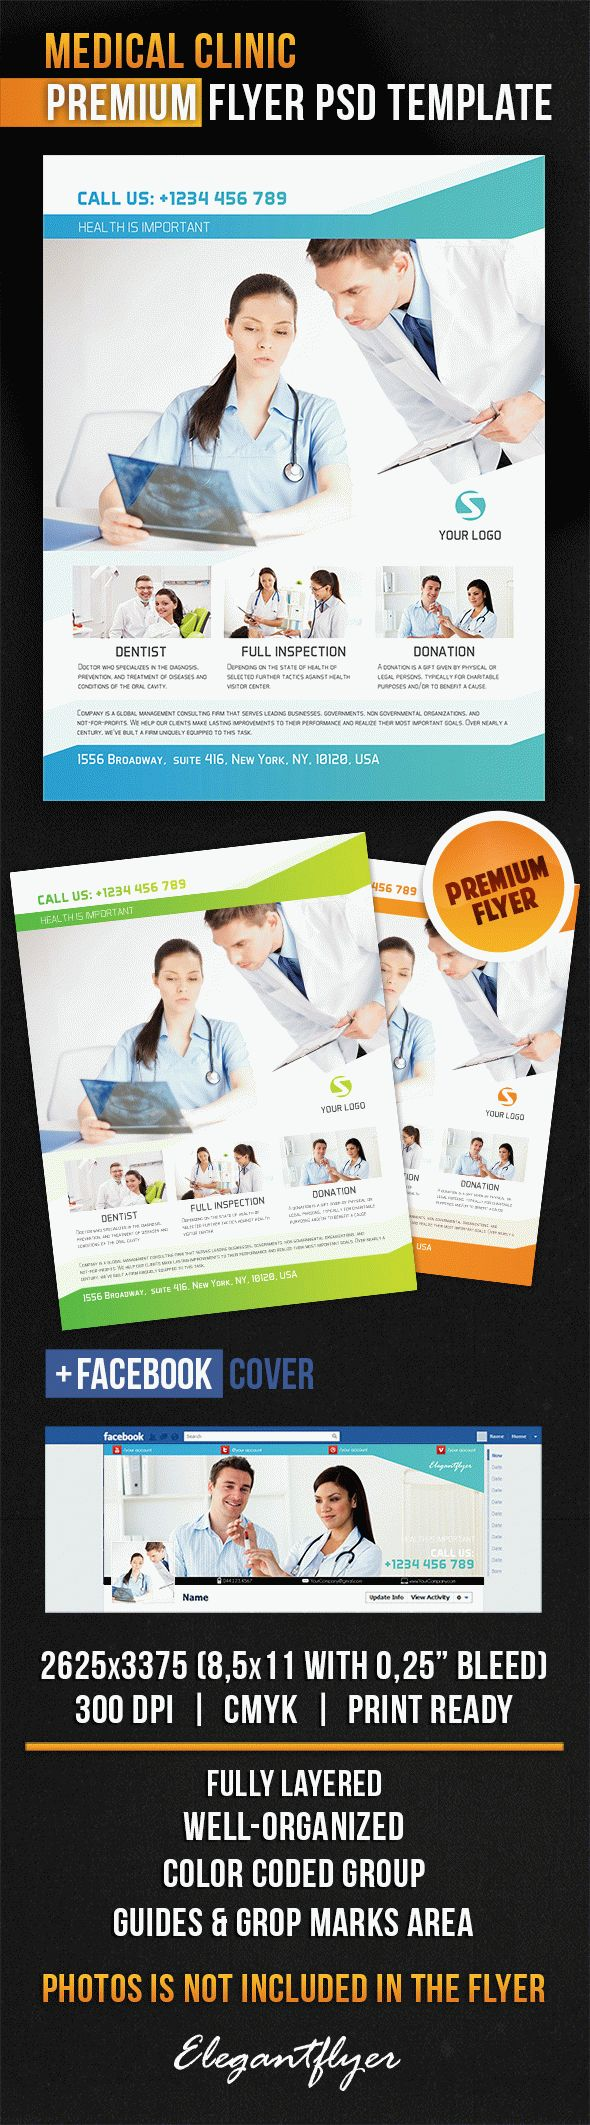 Medical Clinic Flyer Psd Template Facebook Cover on Freebie Parts Of Apple